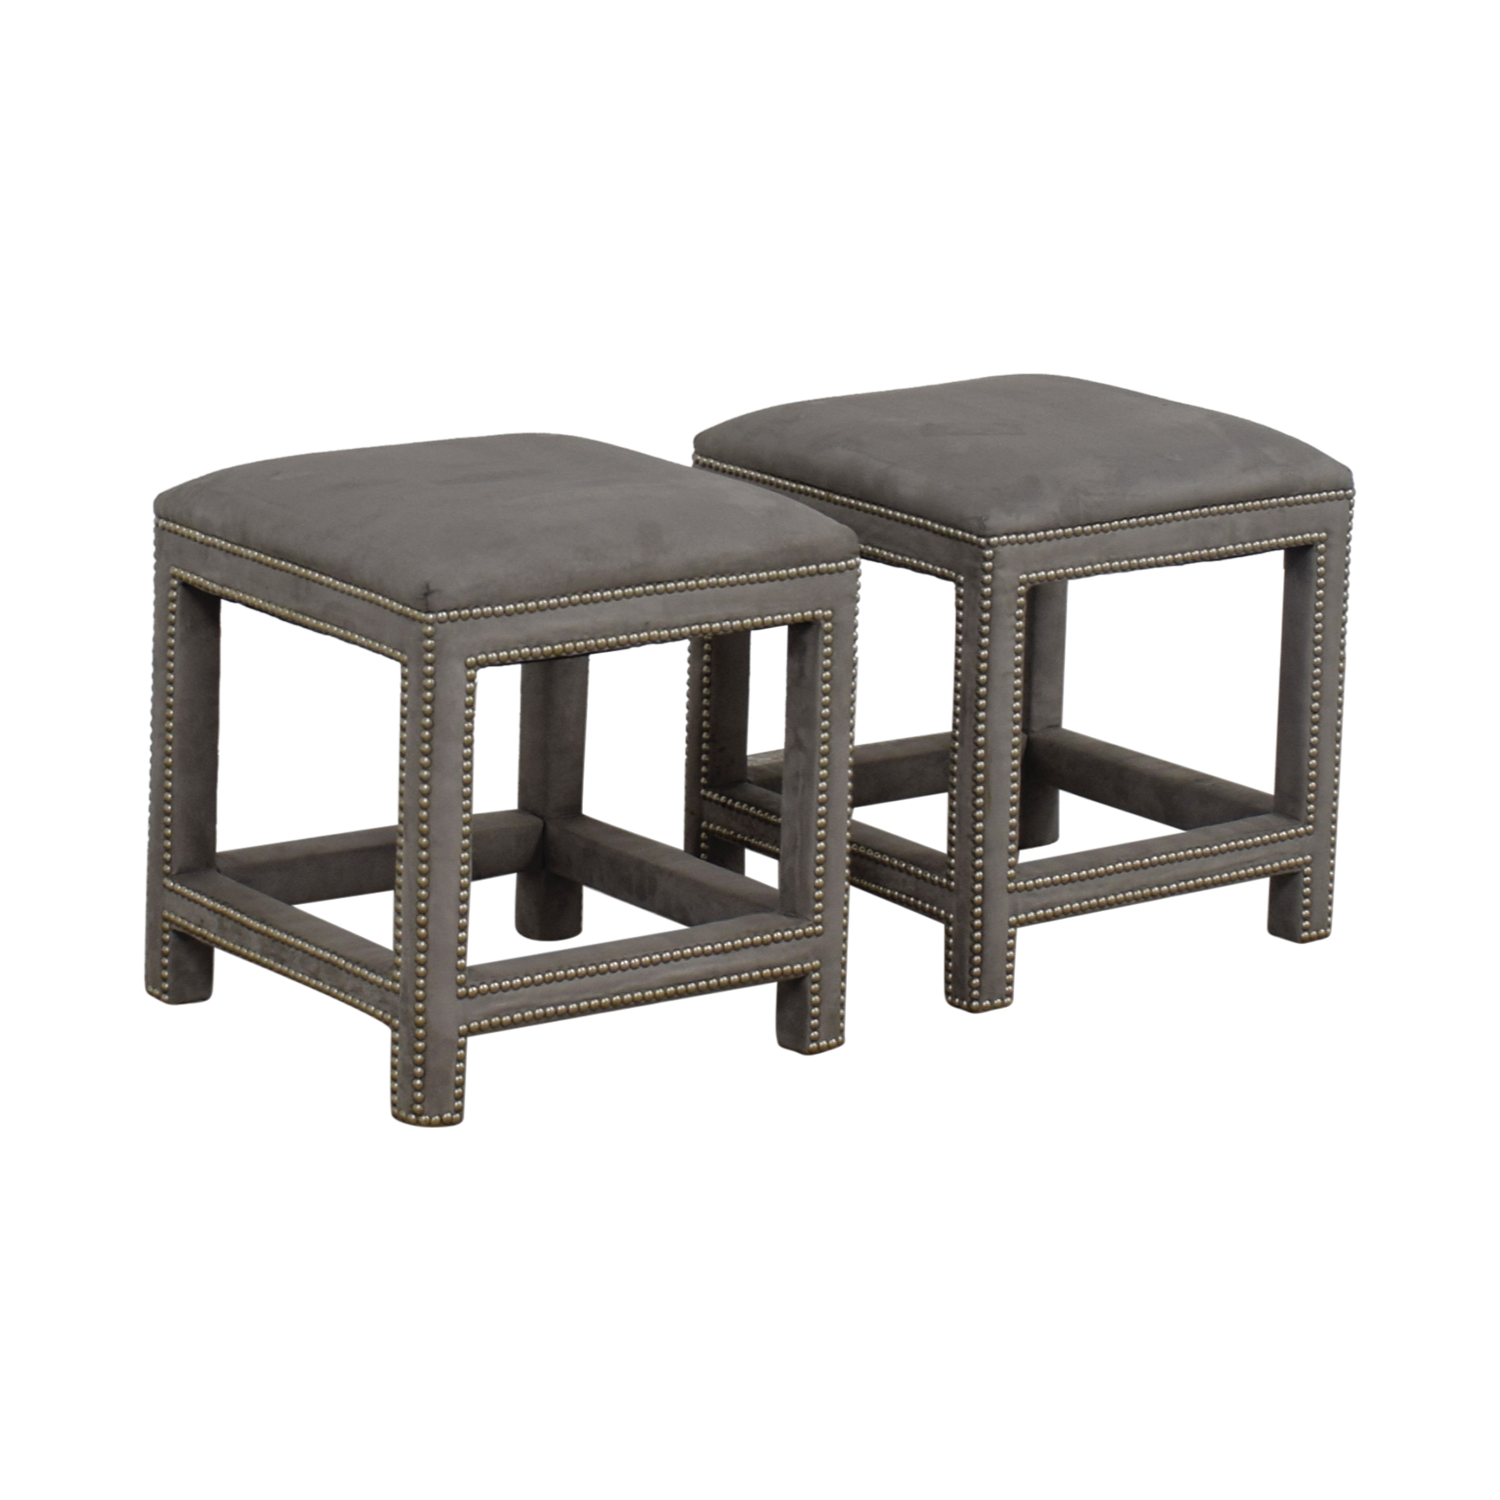 buy Lillian August Grey Suede Nailhead Ottomans or Stools Lillian August Stools